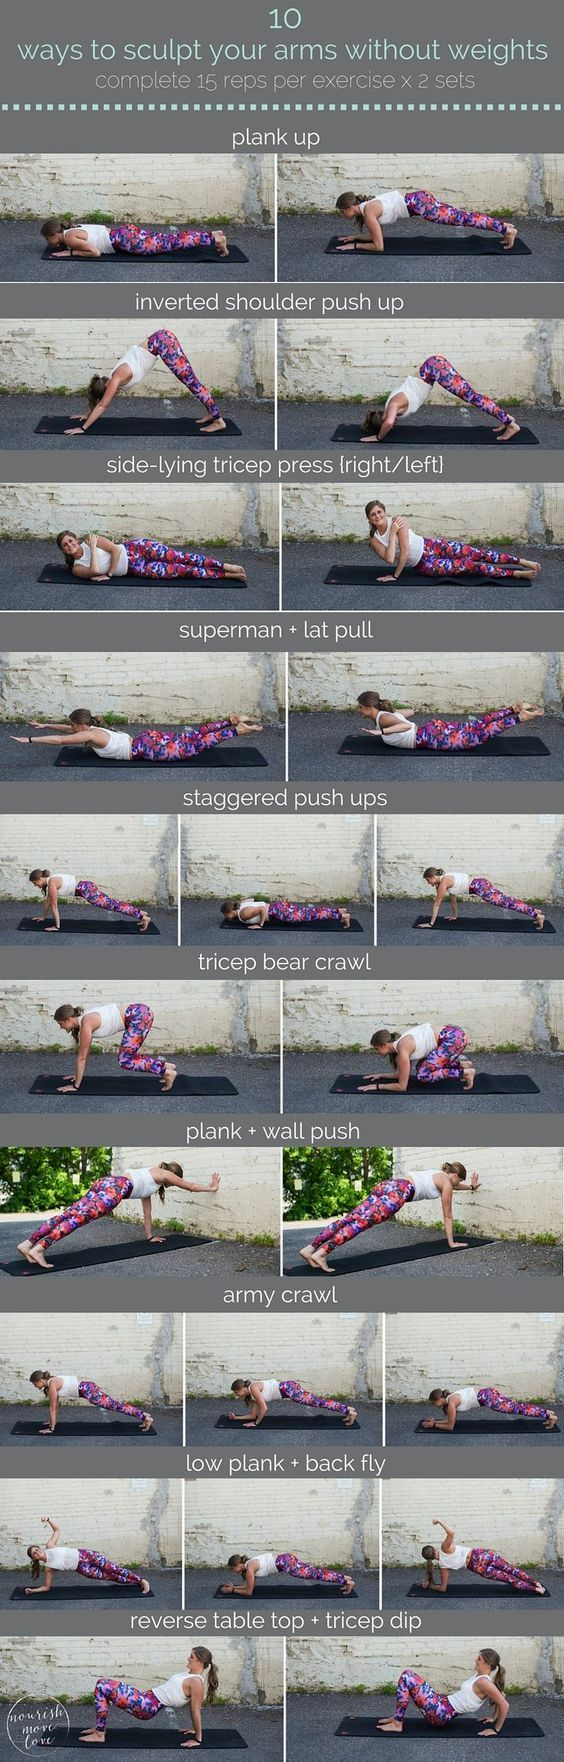 10 ways to sculpt your arms without weights | sculpt seriously strong arms with these 10 equipment-free, upper body exercises you can do anywhere. plank up, push up, tricep press, bear crawl, wall push, army crawl, pack fly, tricep dip.. | www.nourishmovelove.com